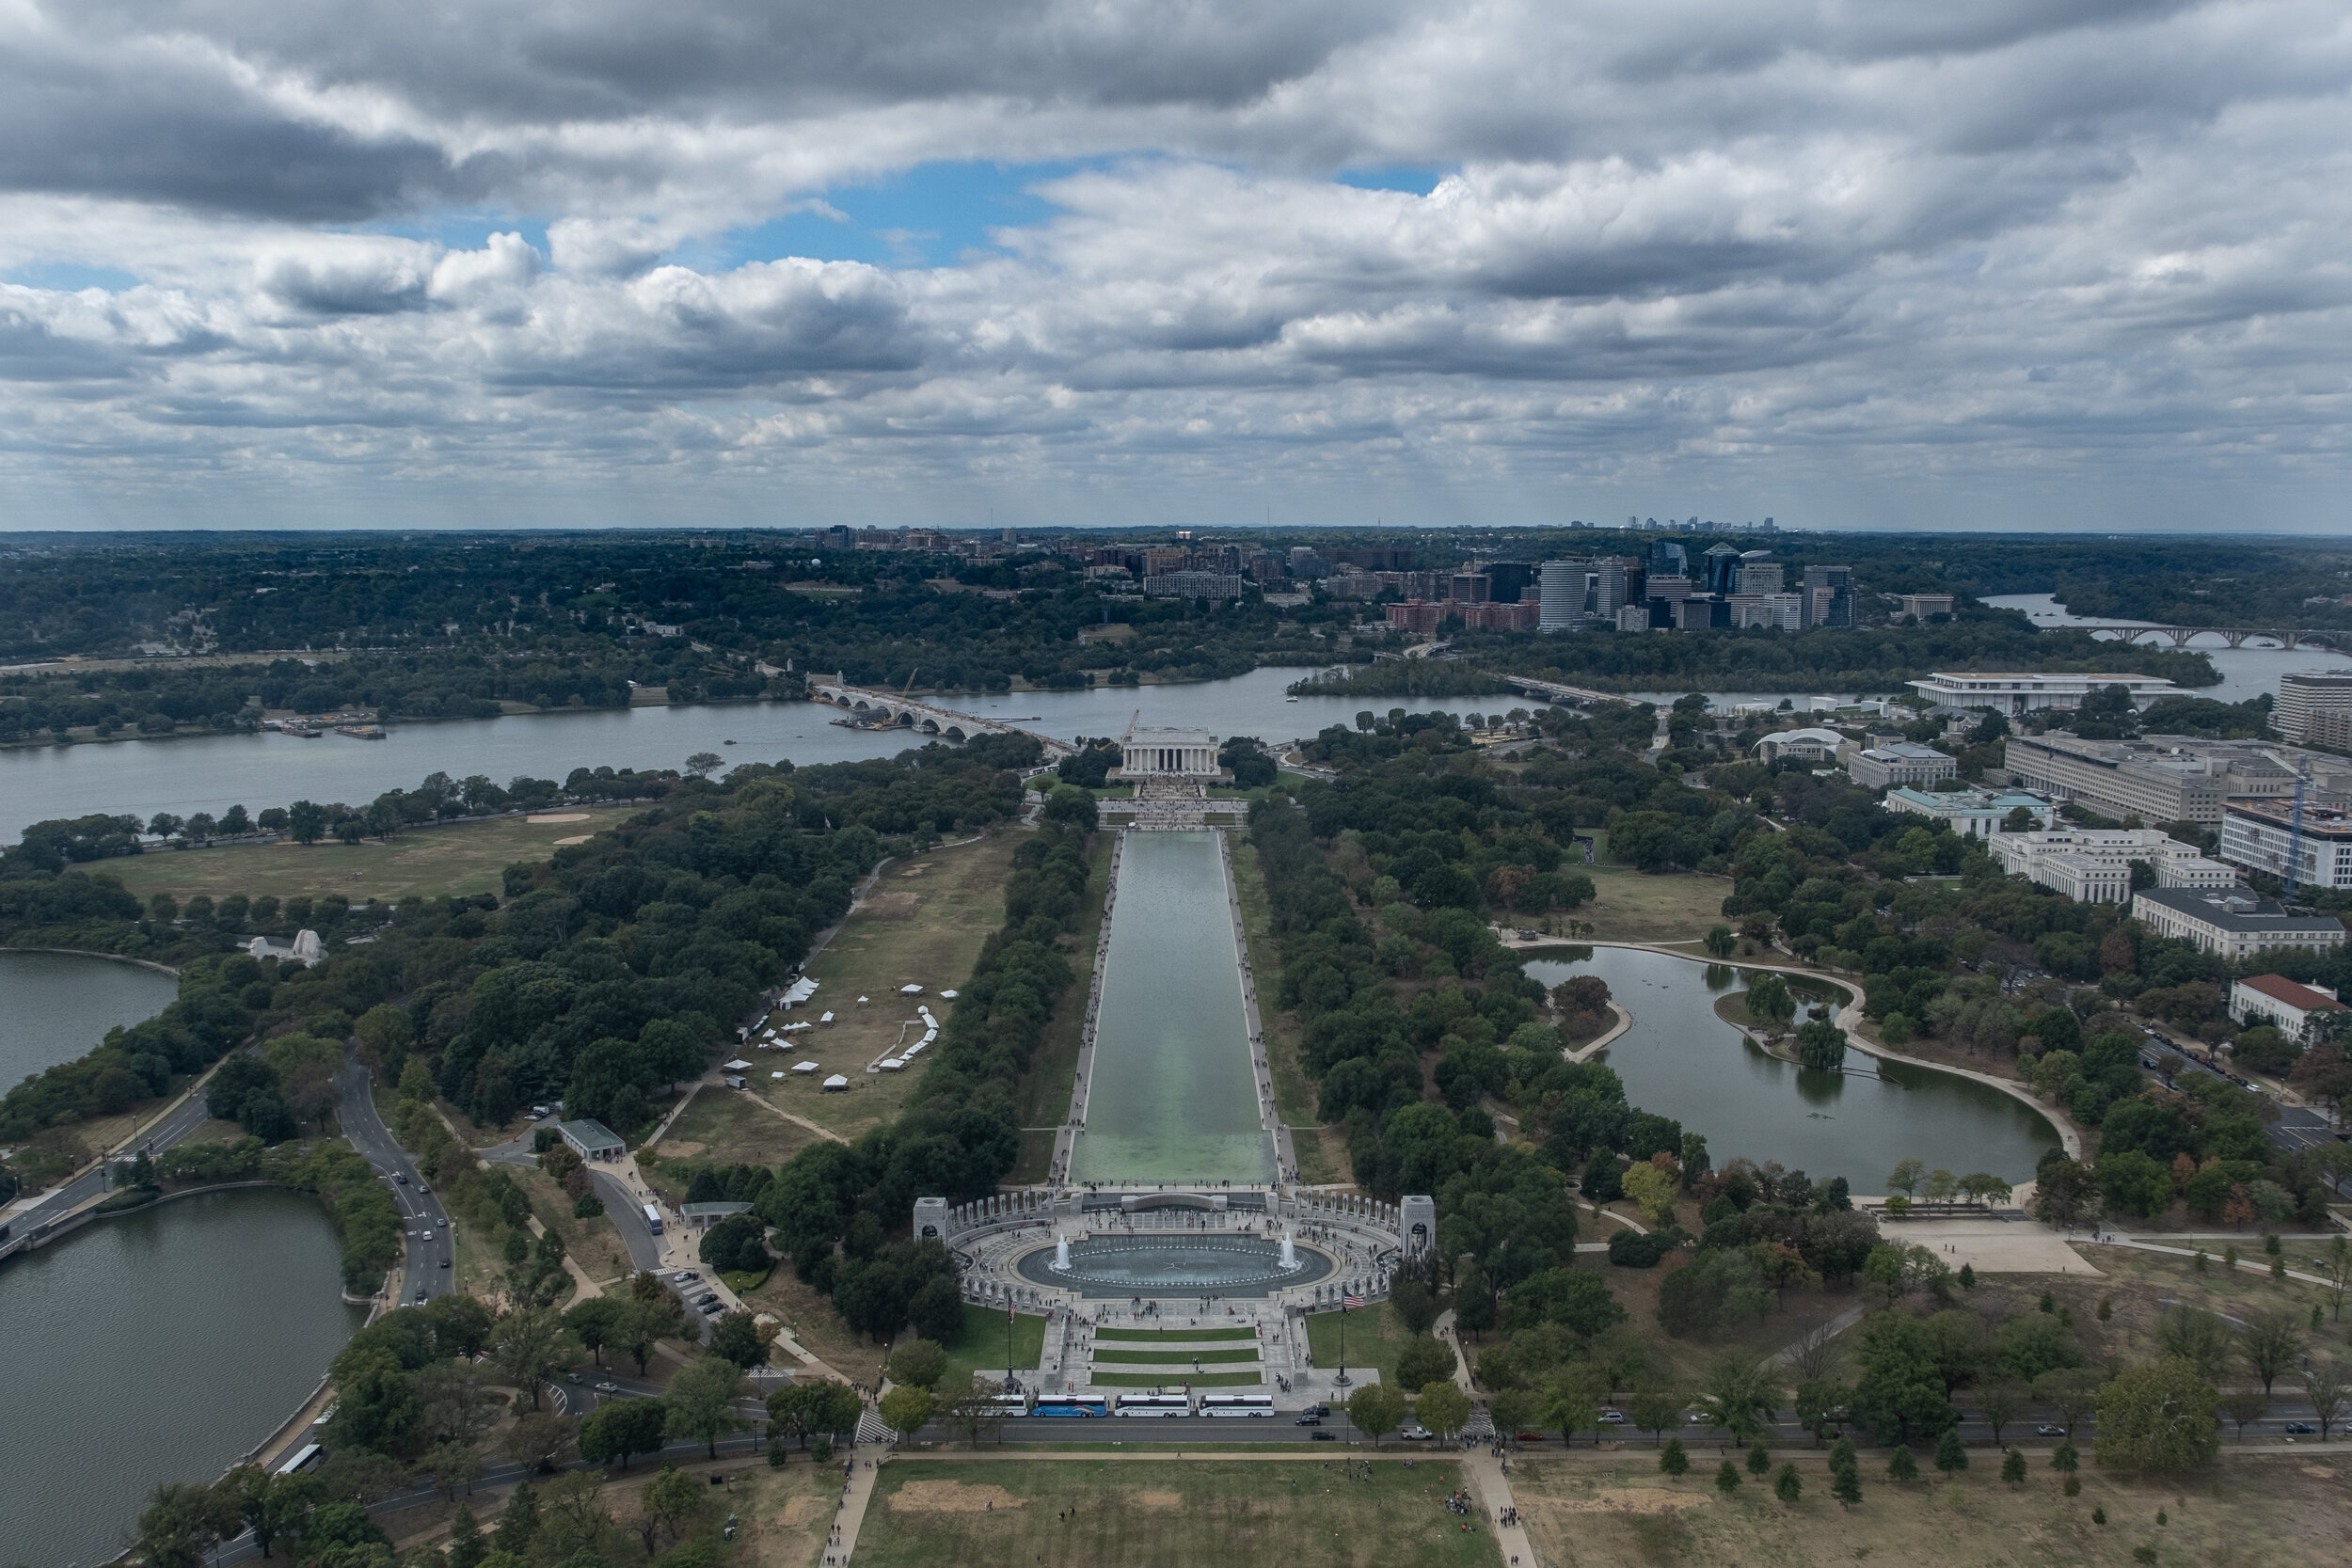 West toward the Lincoln Memorial